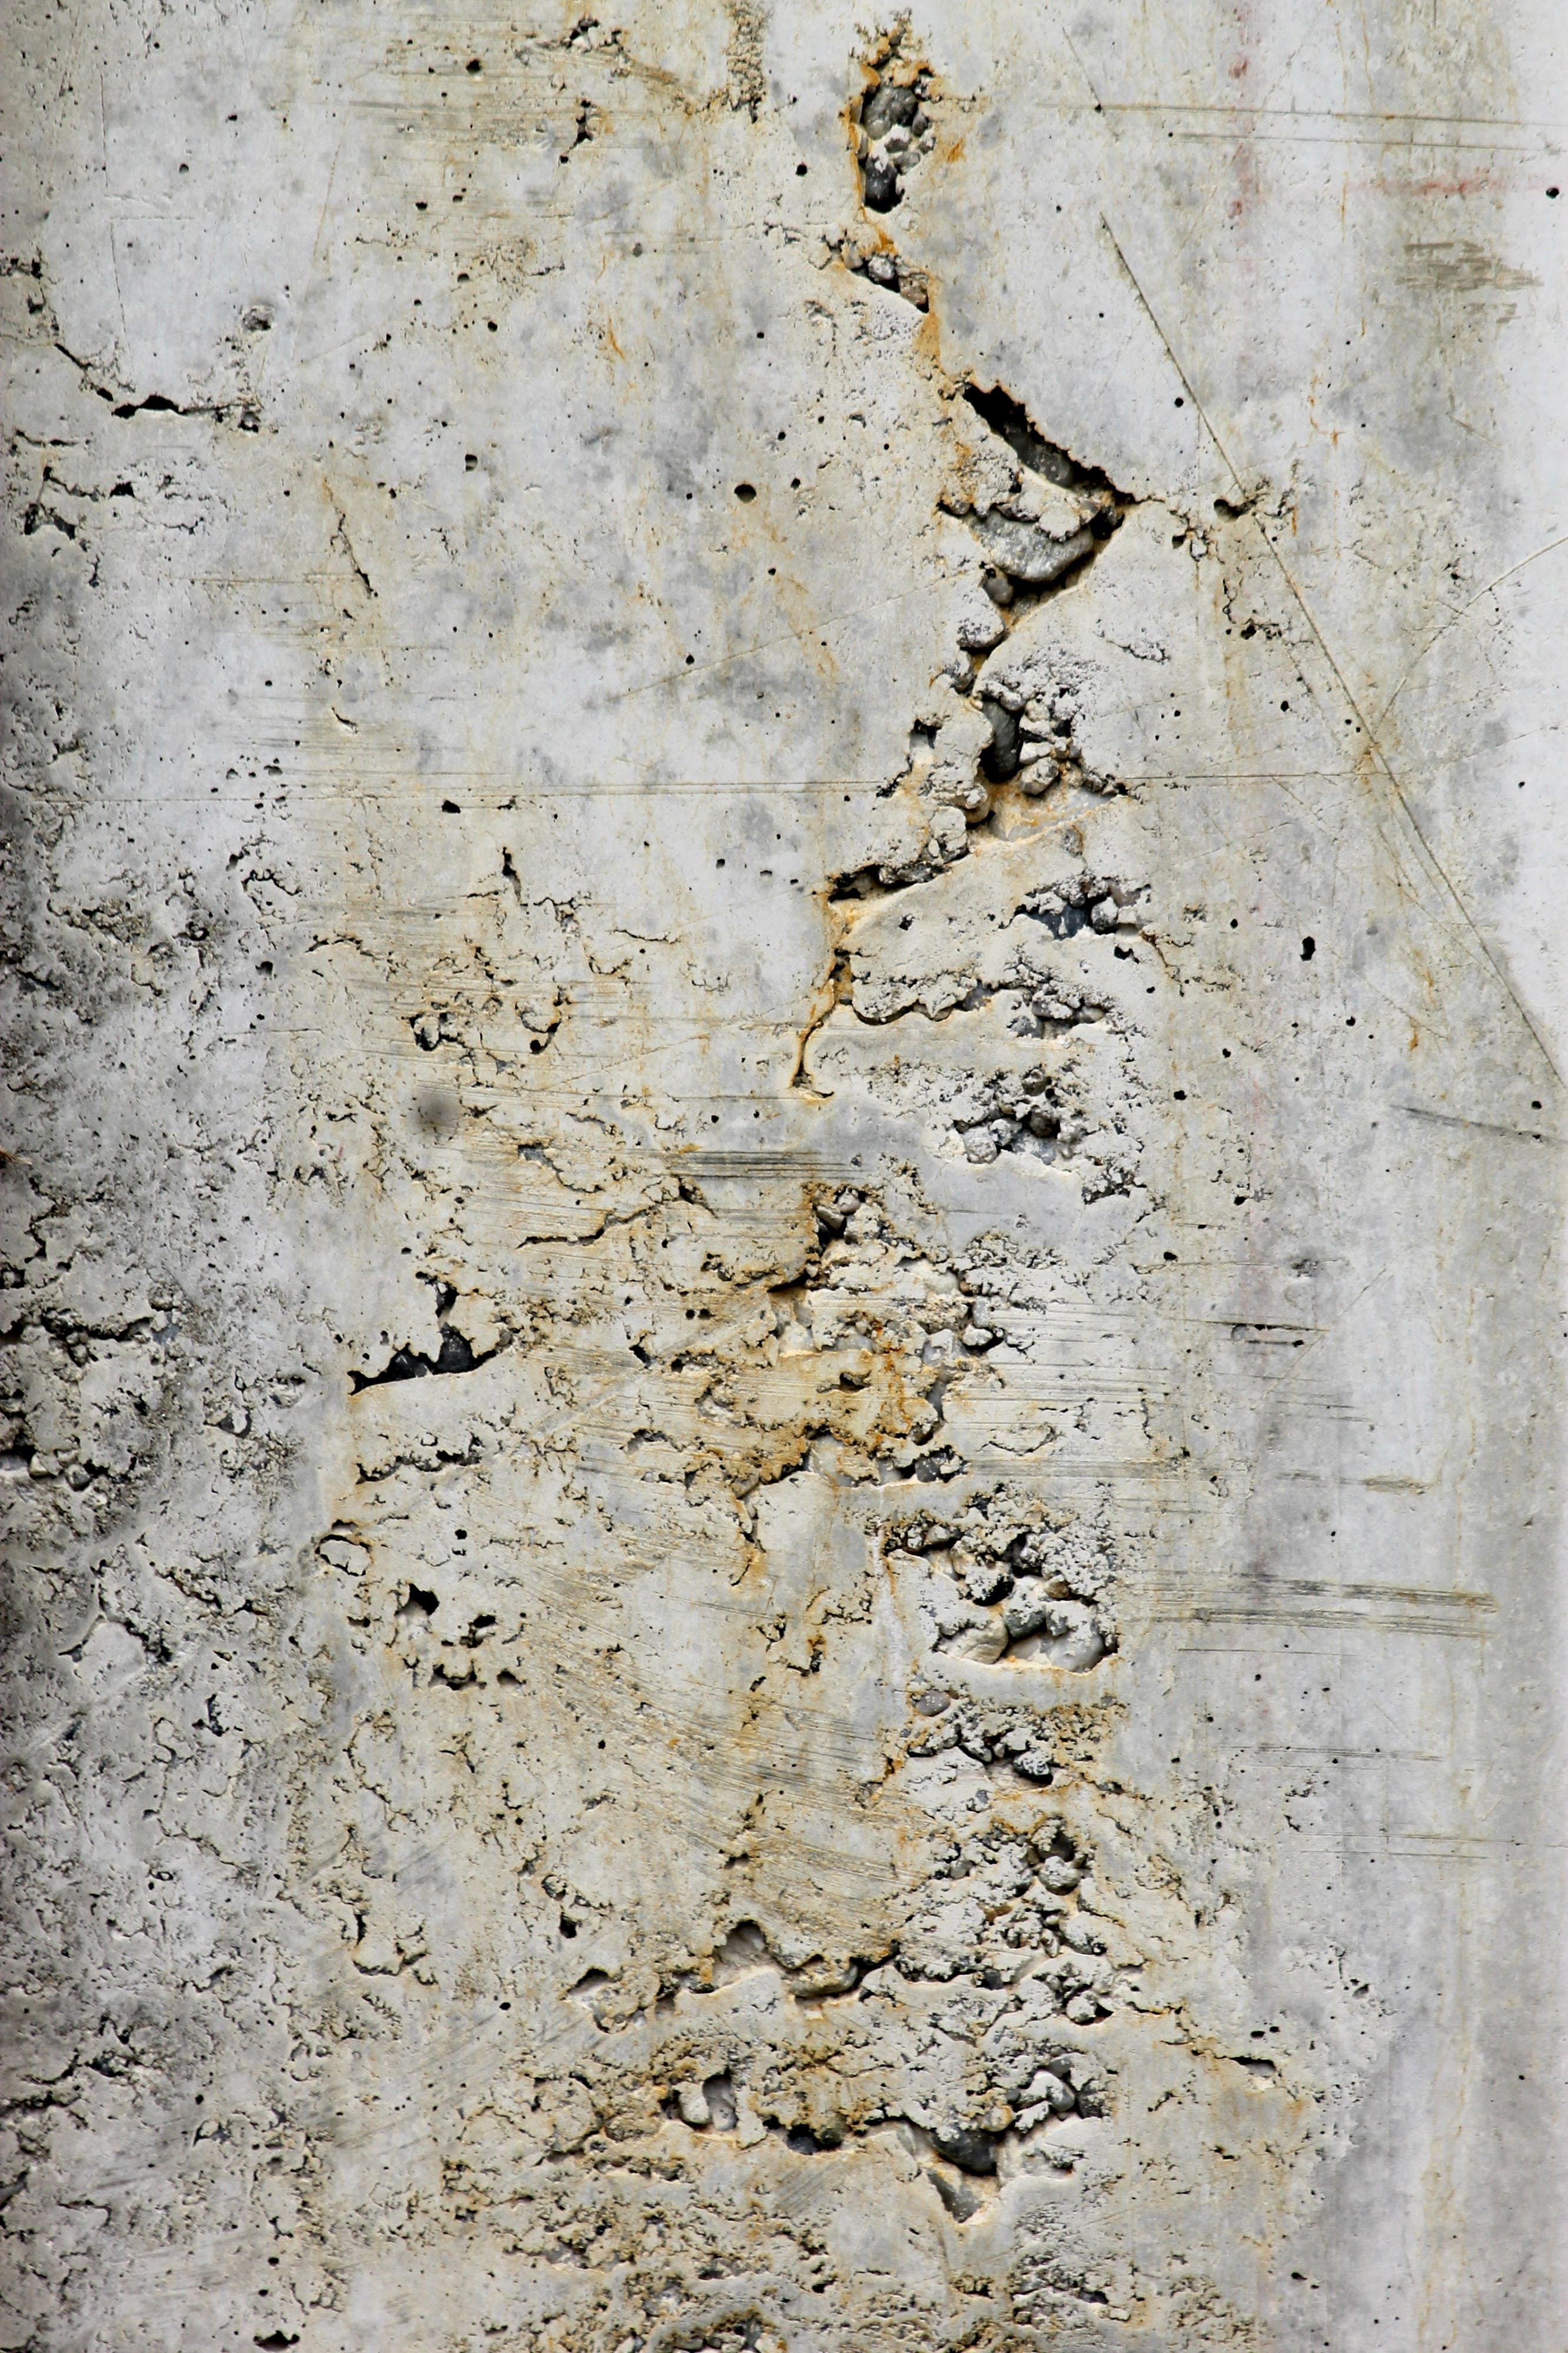 Free stock photo of buildings, wall, rustic, surface